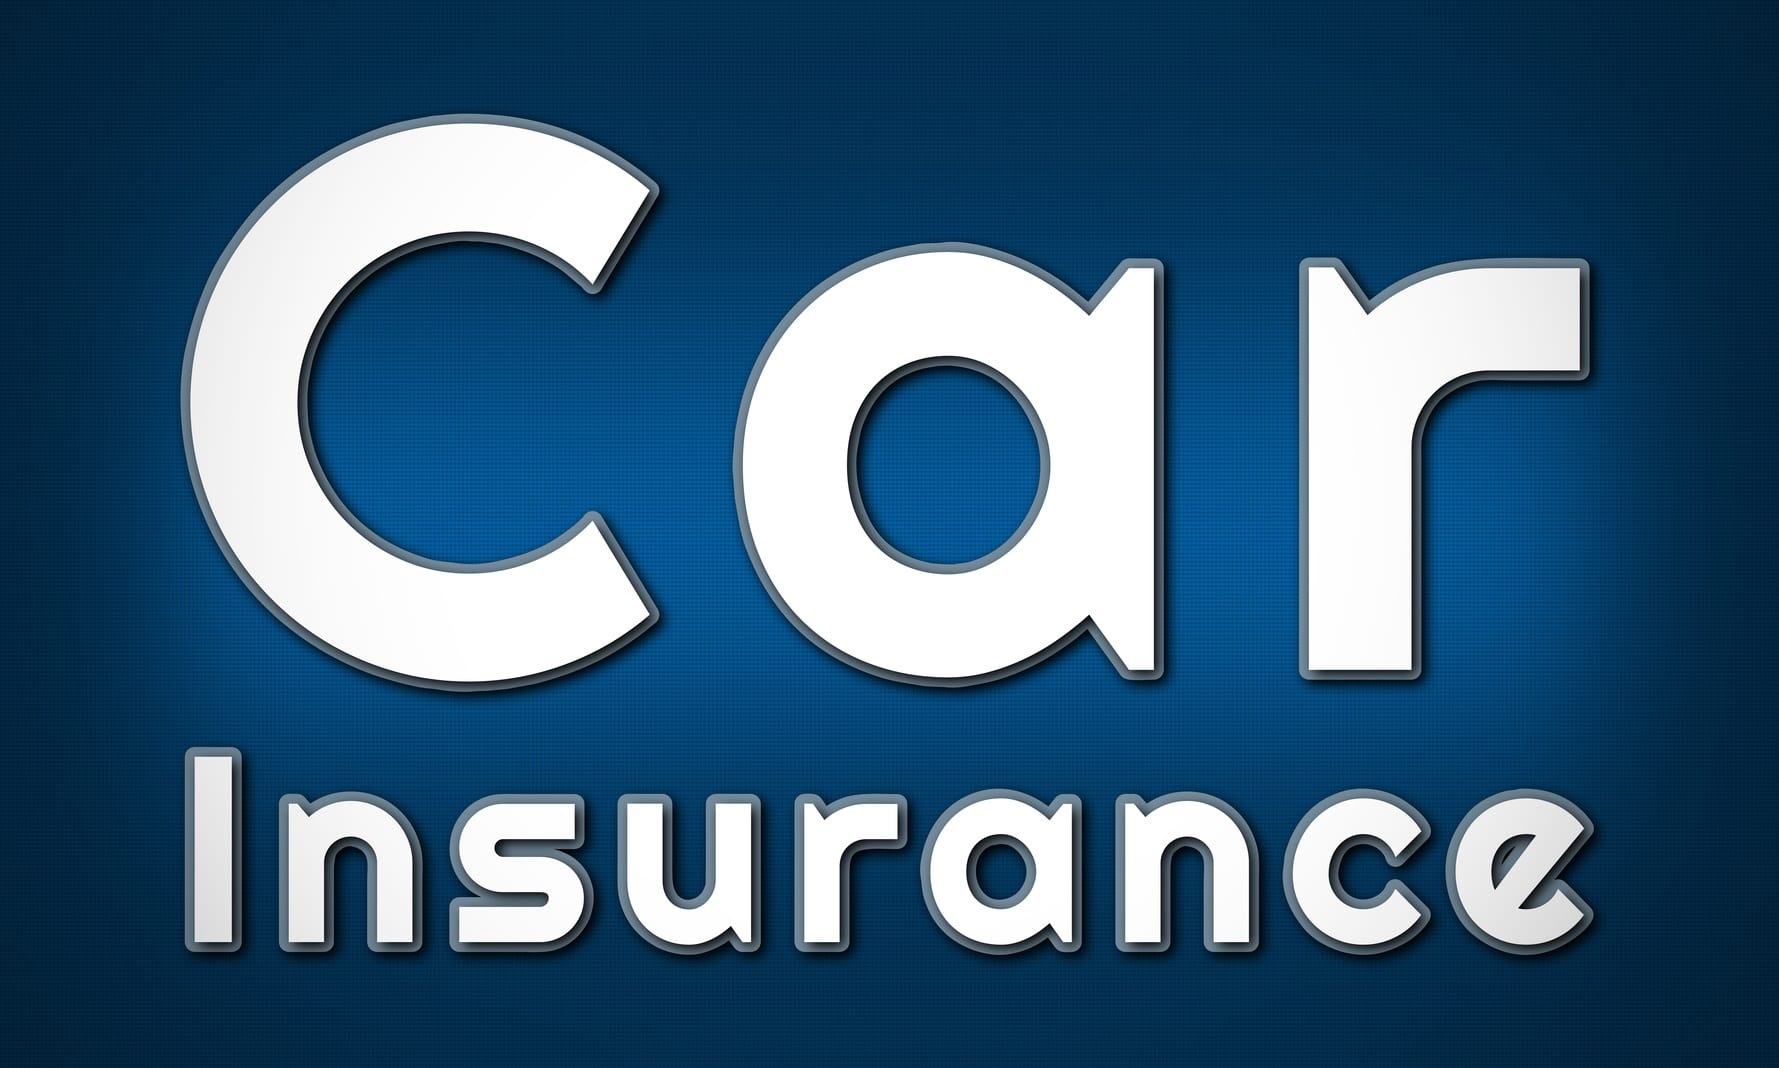 Compare Car Insurance Quotes | Fast and Secure | EINSURANCE